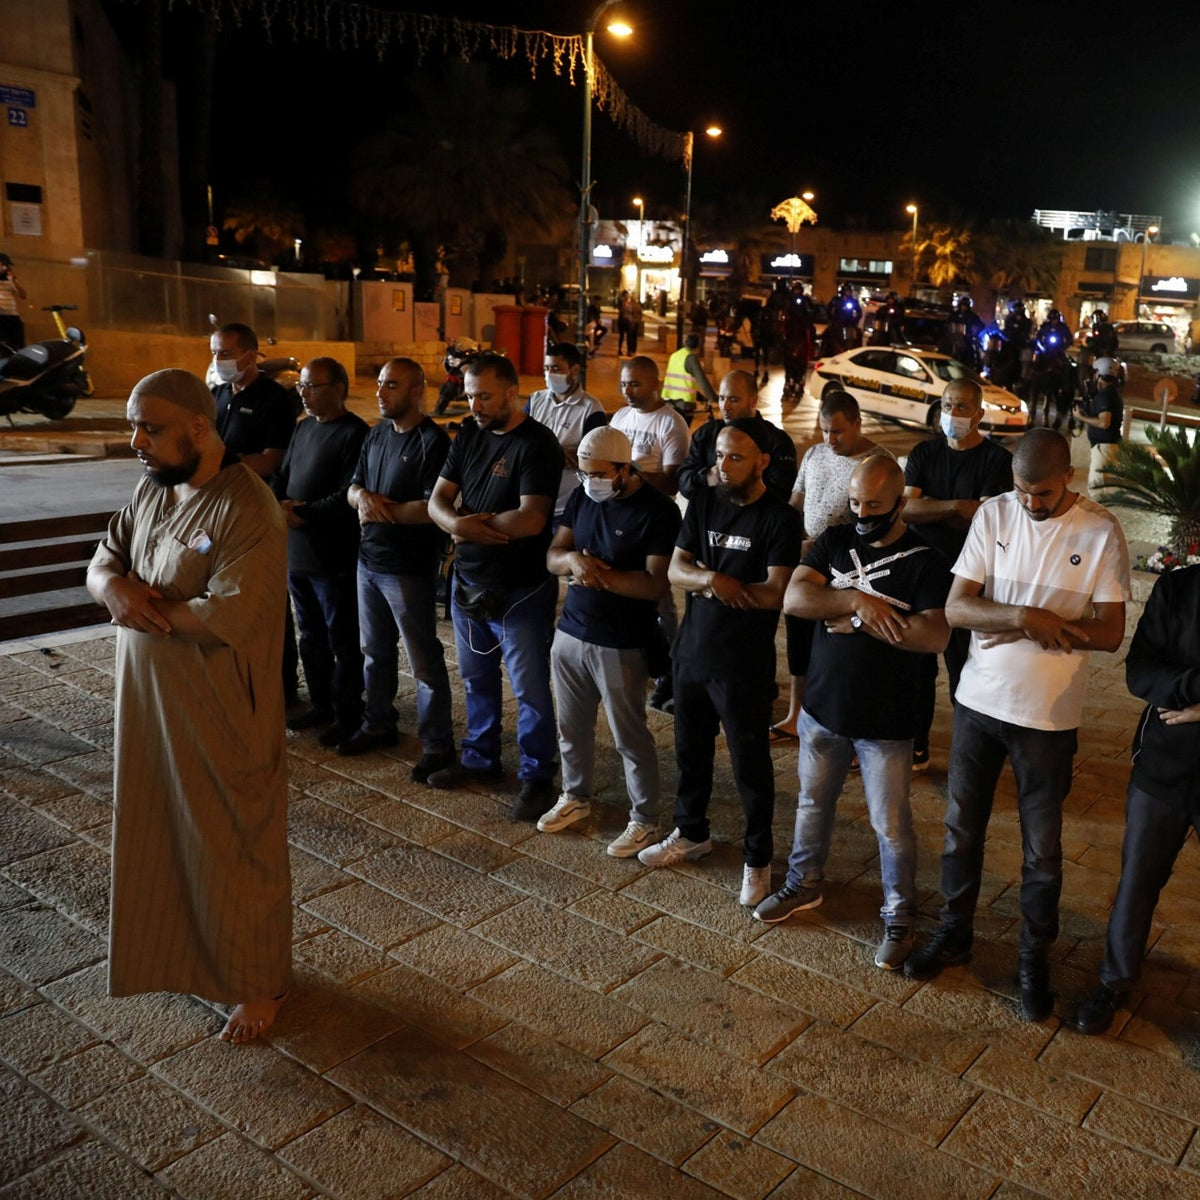 The prayer demonstration that took place as part of the the protests in Jaffa, June 10, 2020